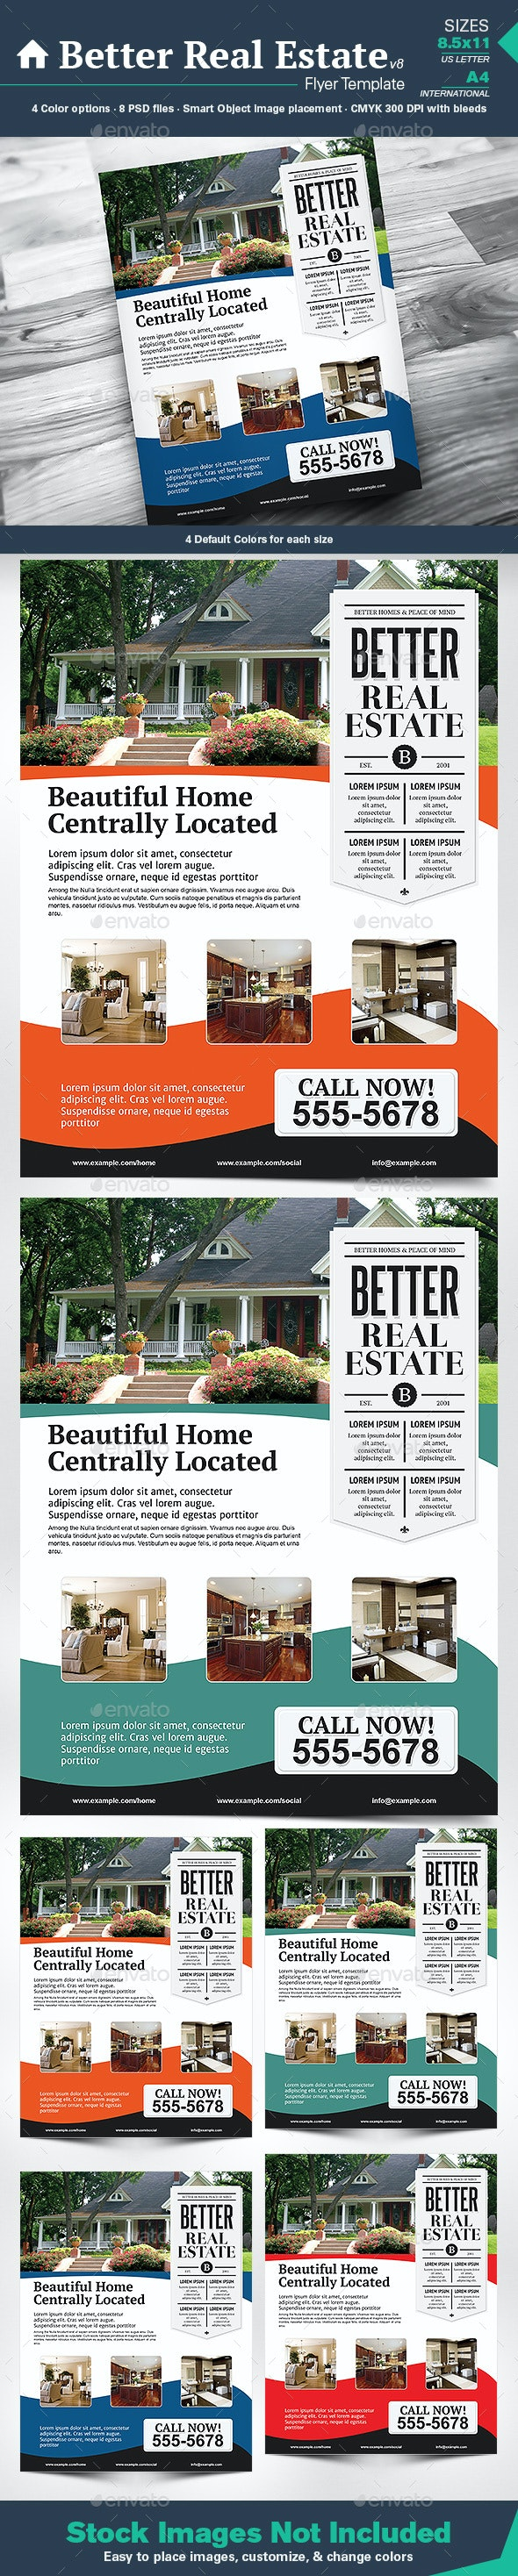 Better Real Estate Flyer Template v8 - Corporate Flyers